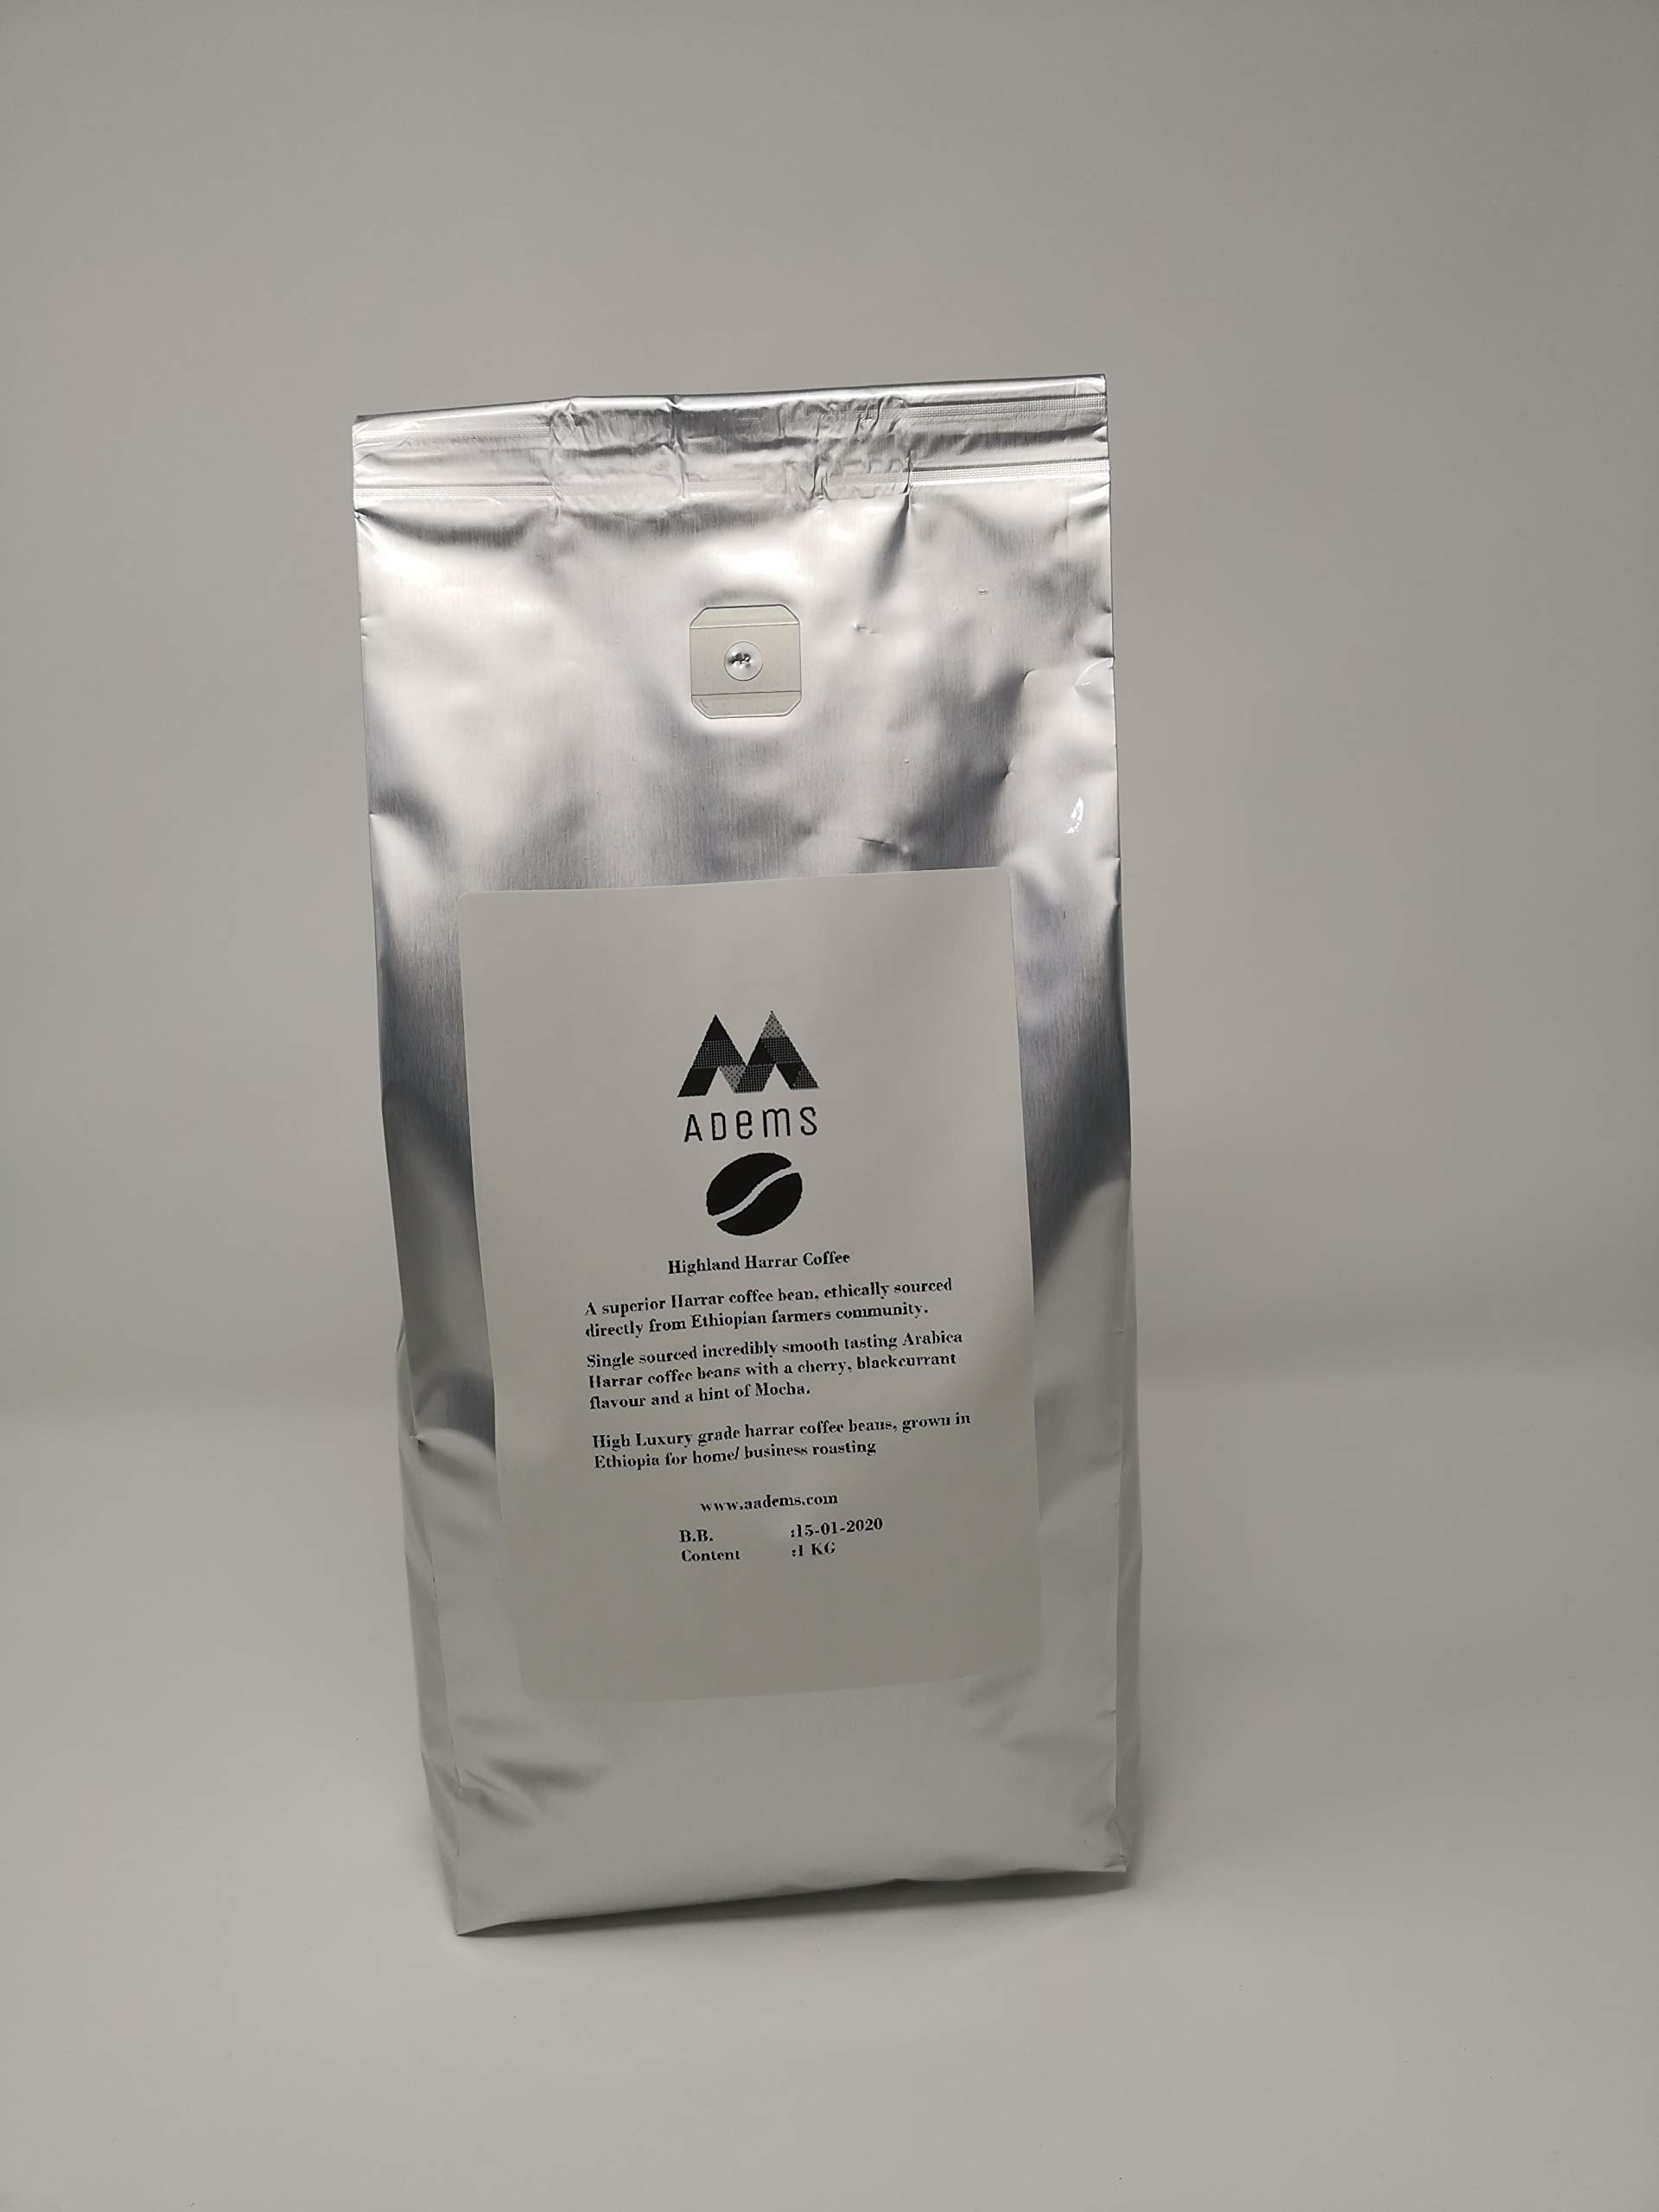 Adems Ethiopian highland harrar green coffee beans 1kg unroasted for home/business roasting (2.2Lbs)